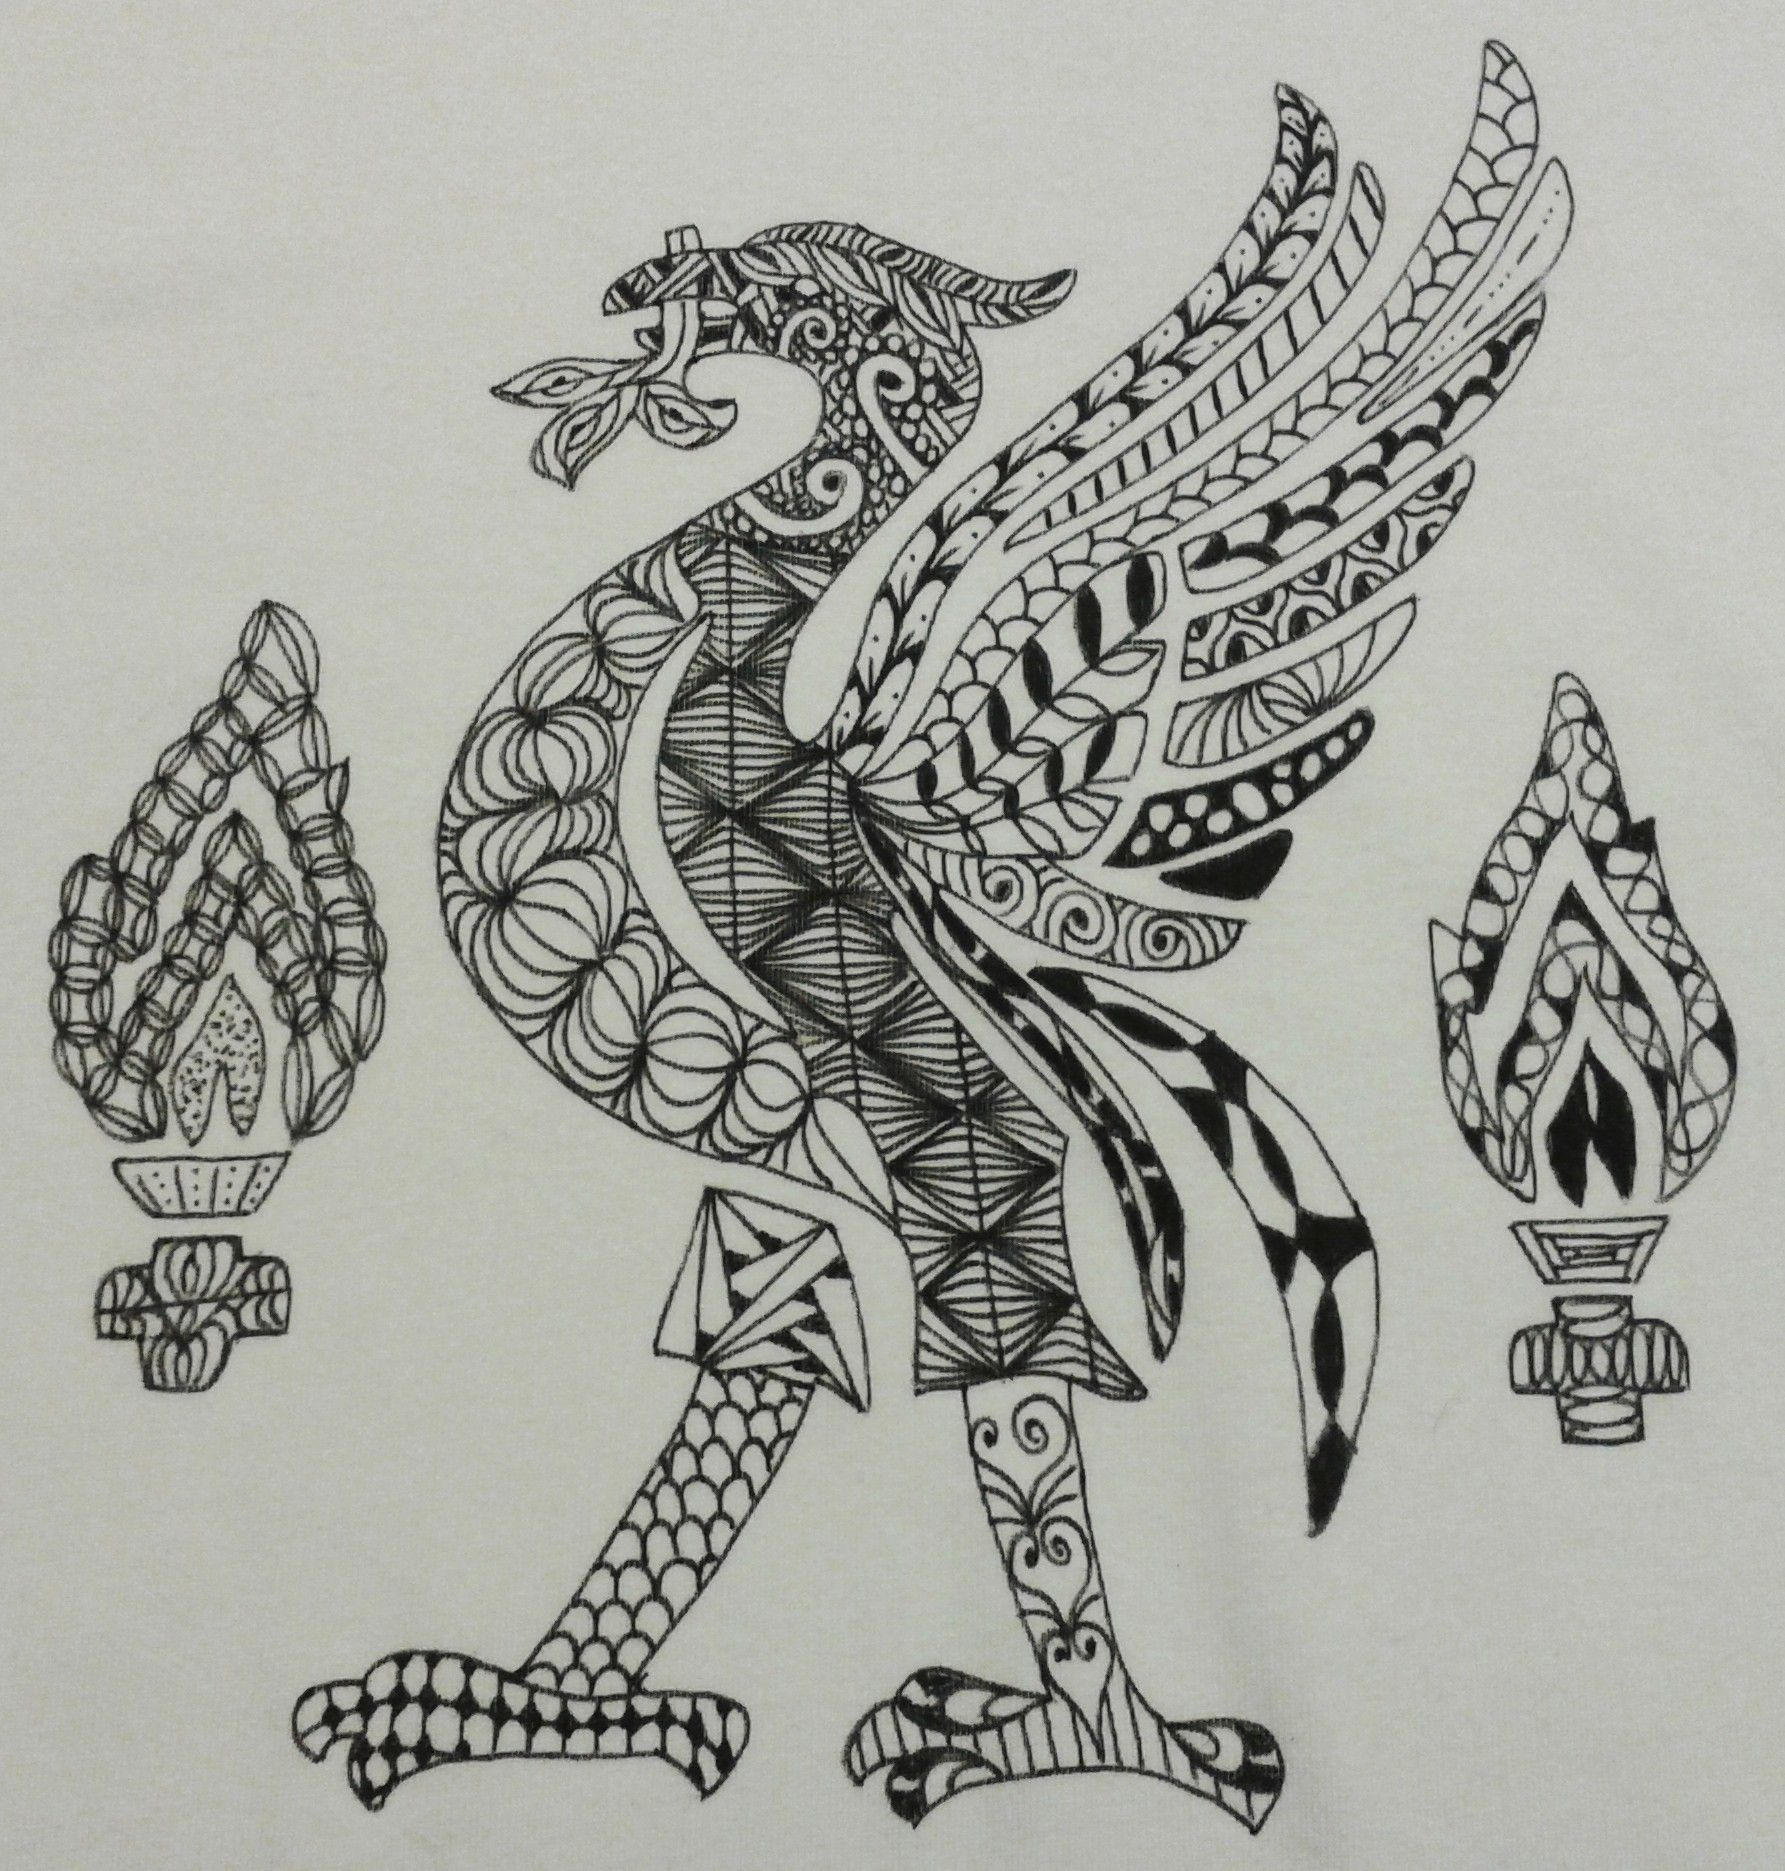 Design your own t shirt liverpool -  Zentangle Inspired T Shirt Design Liverpool Football Club Logo Designed